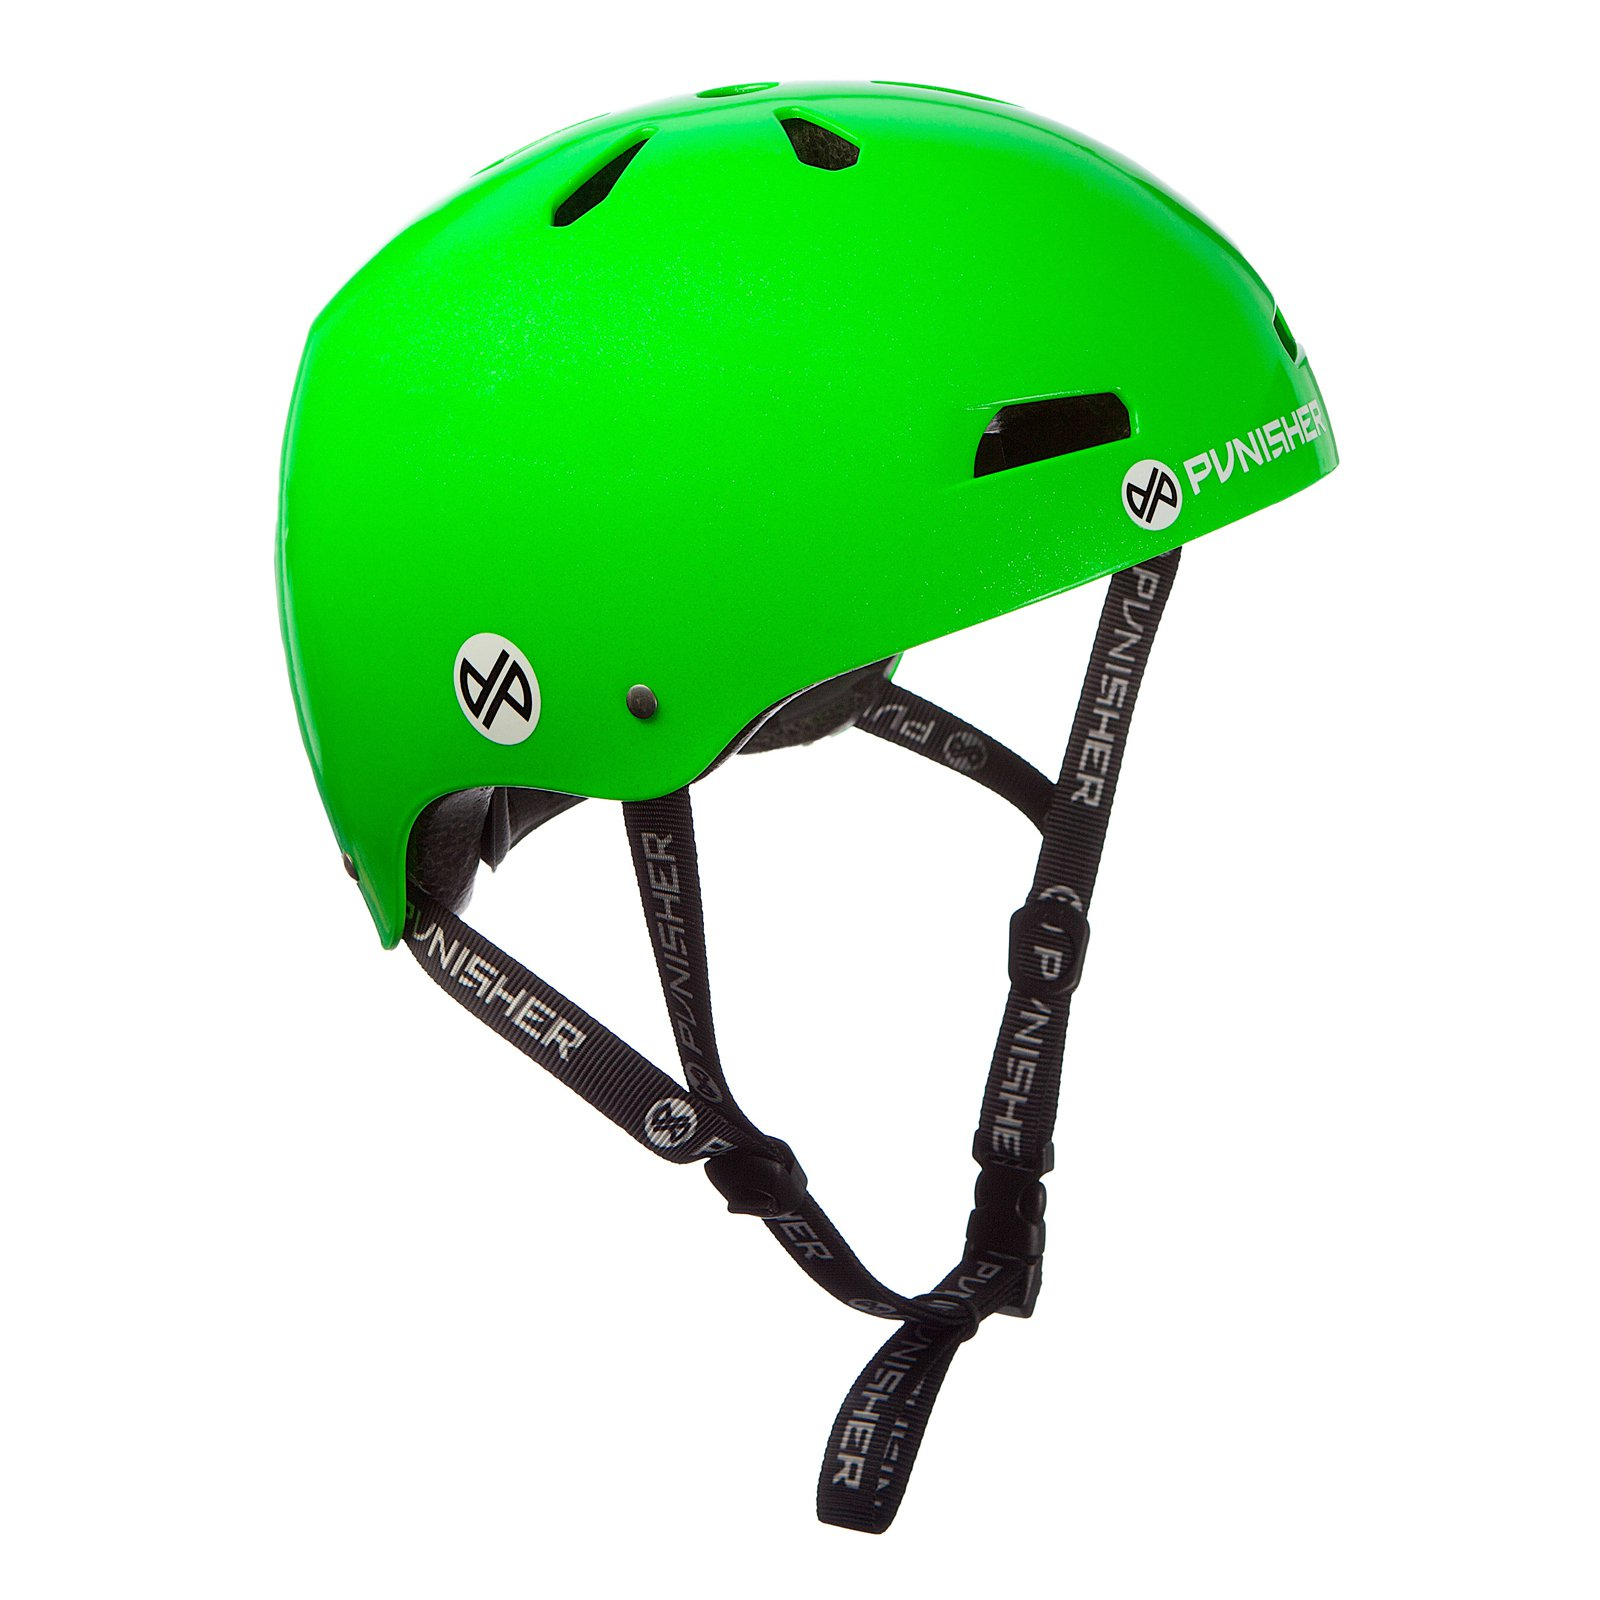 Punisher Skateboards Premium Youth 13-vent Bright Neon Green Dual Safety Certified BMX Bike and Skateboard Helmet, Size Medium